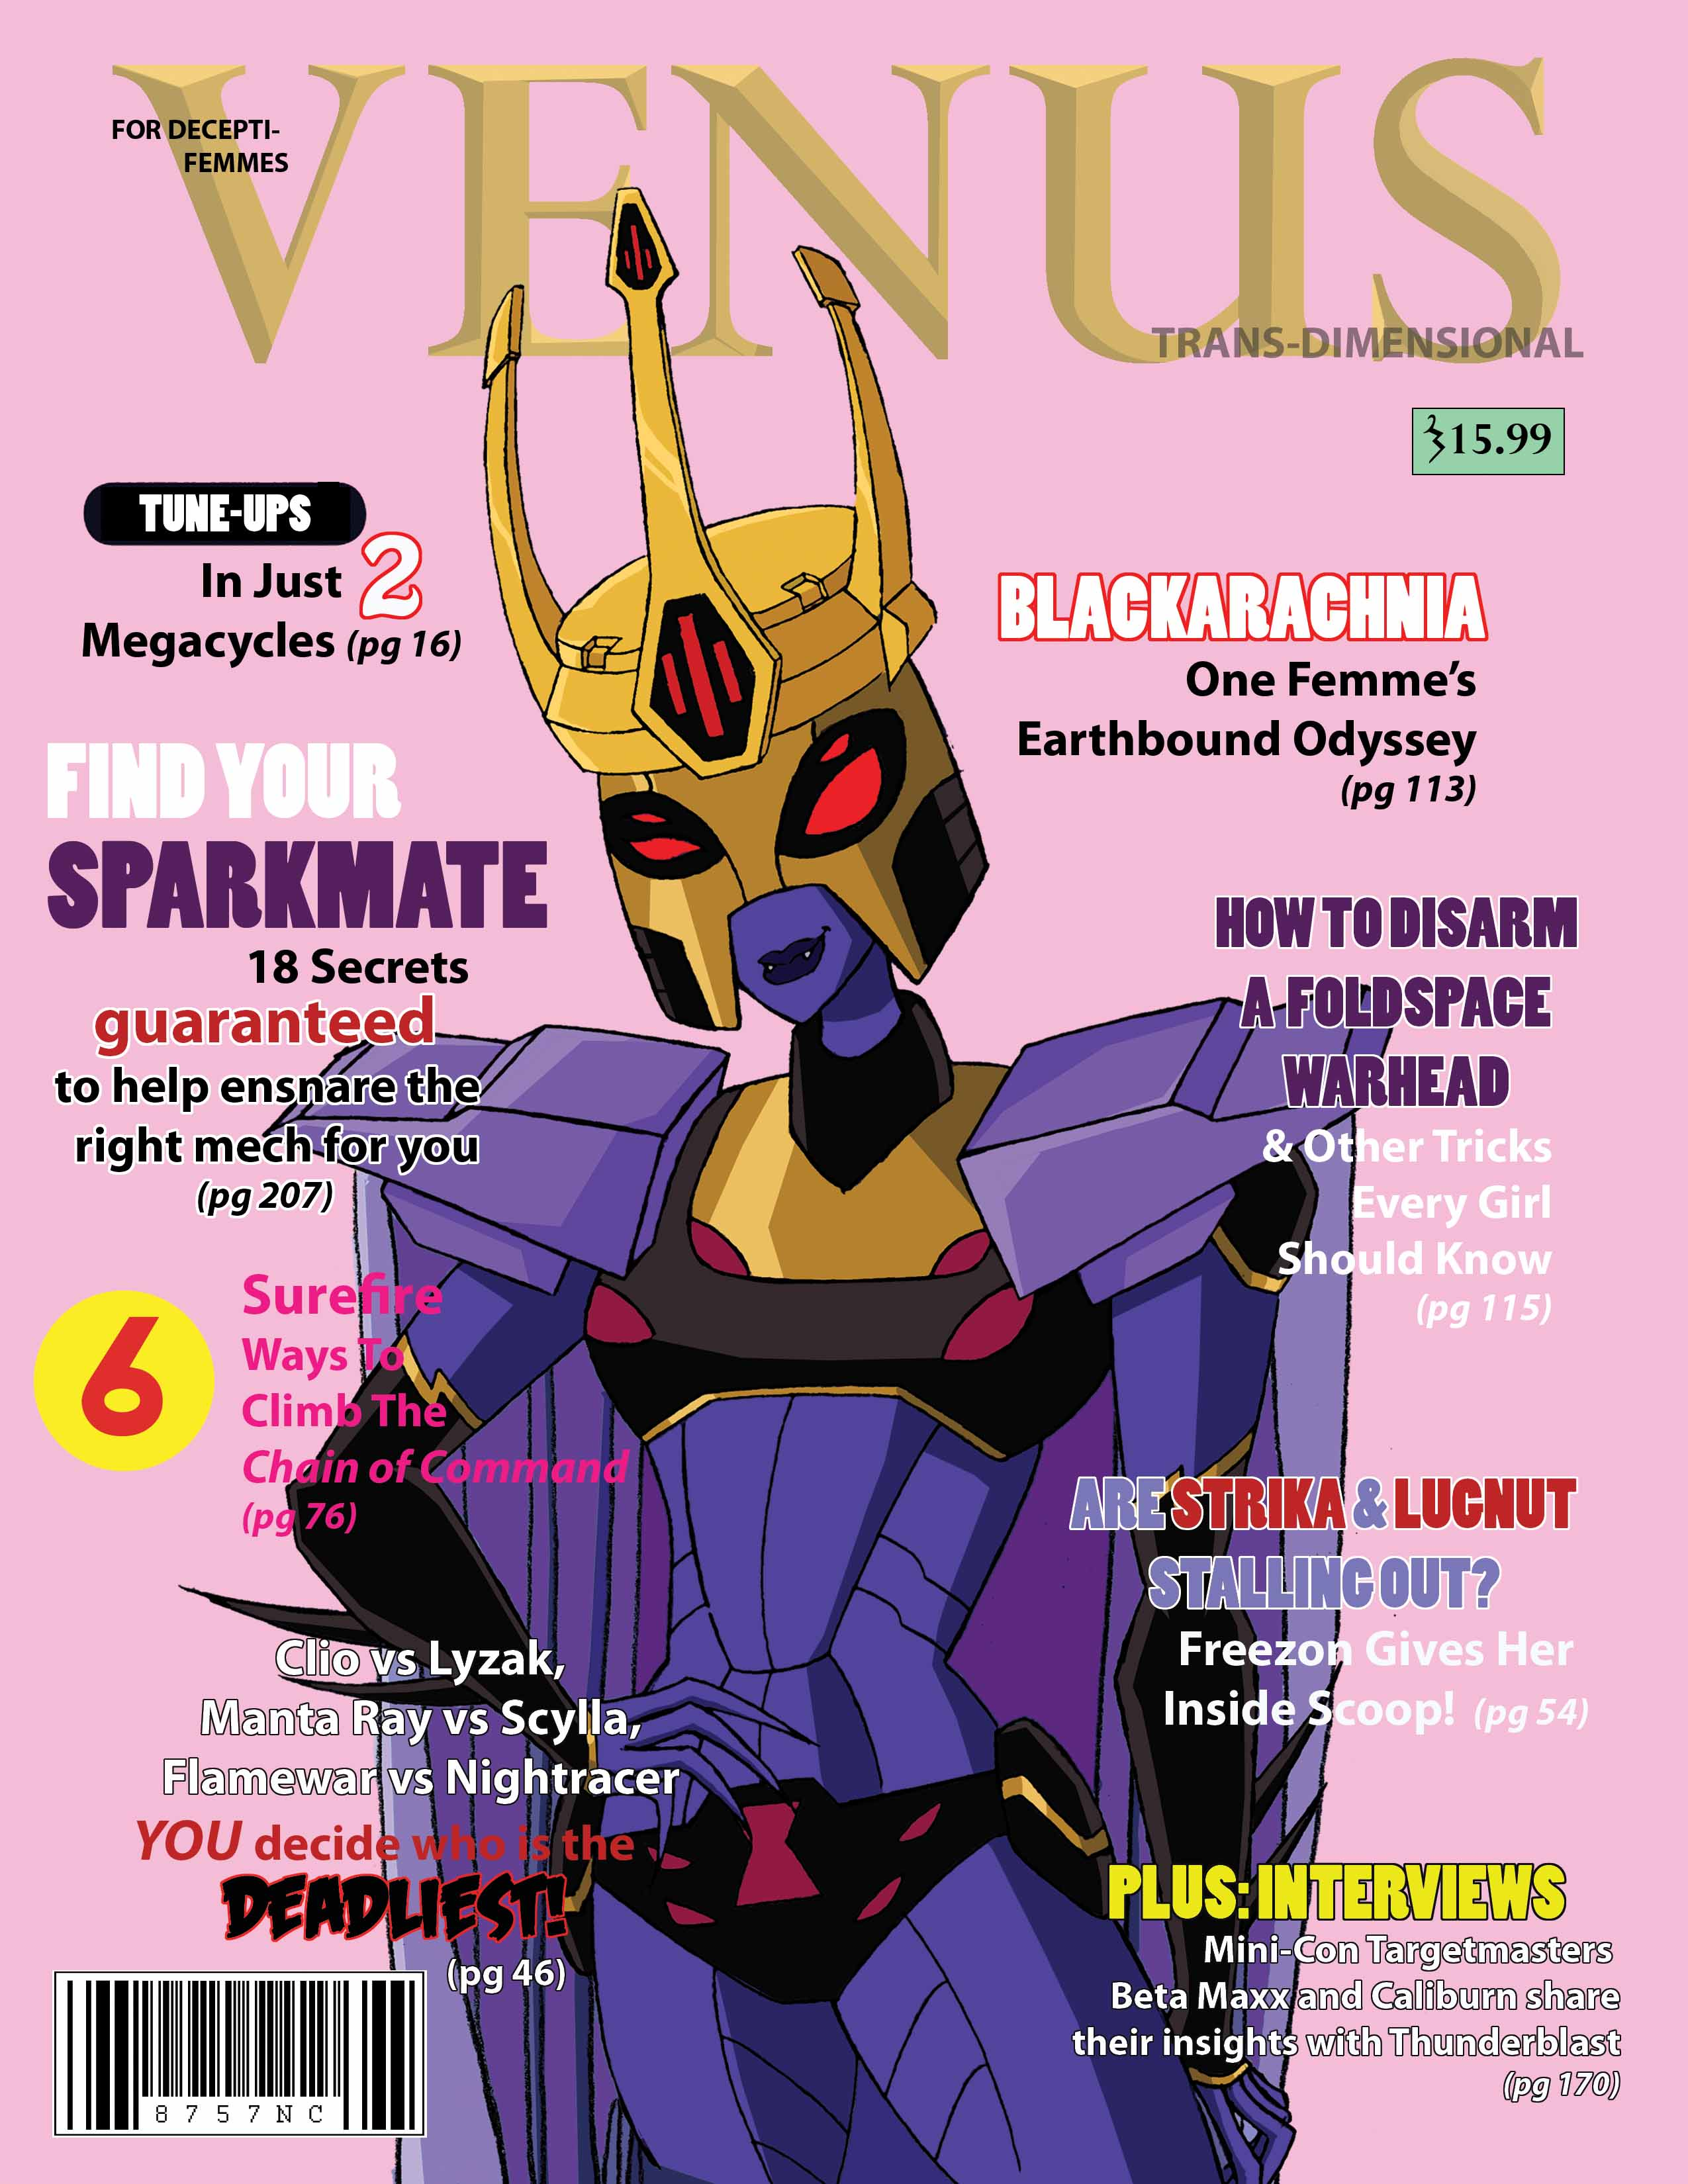 Blackarachnia___Venus_Mag_by_BillForster